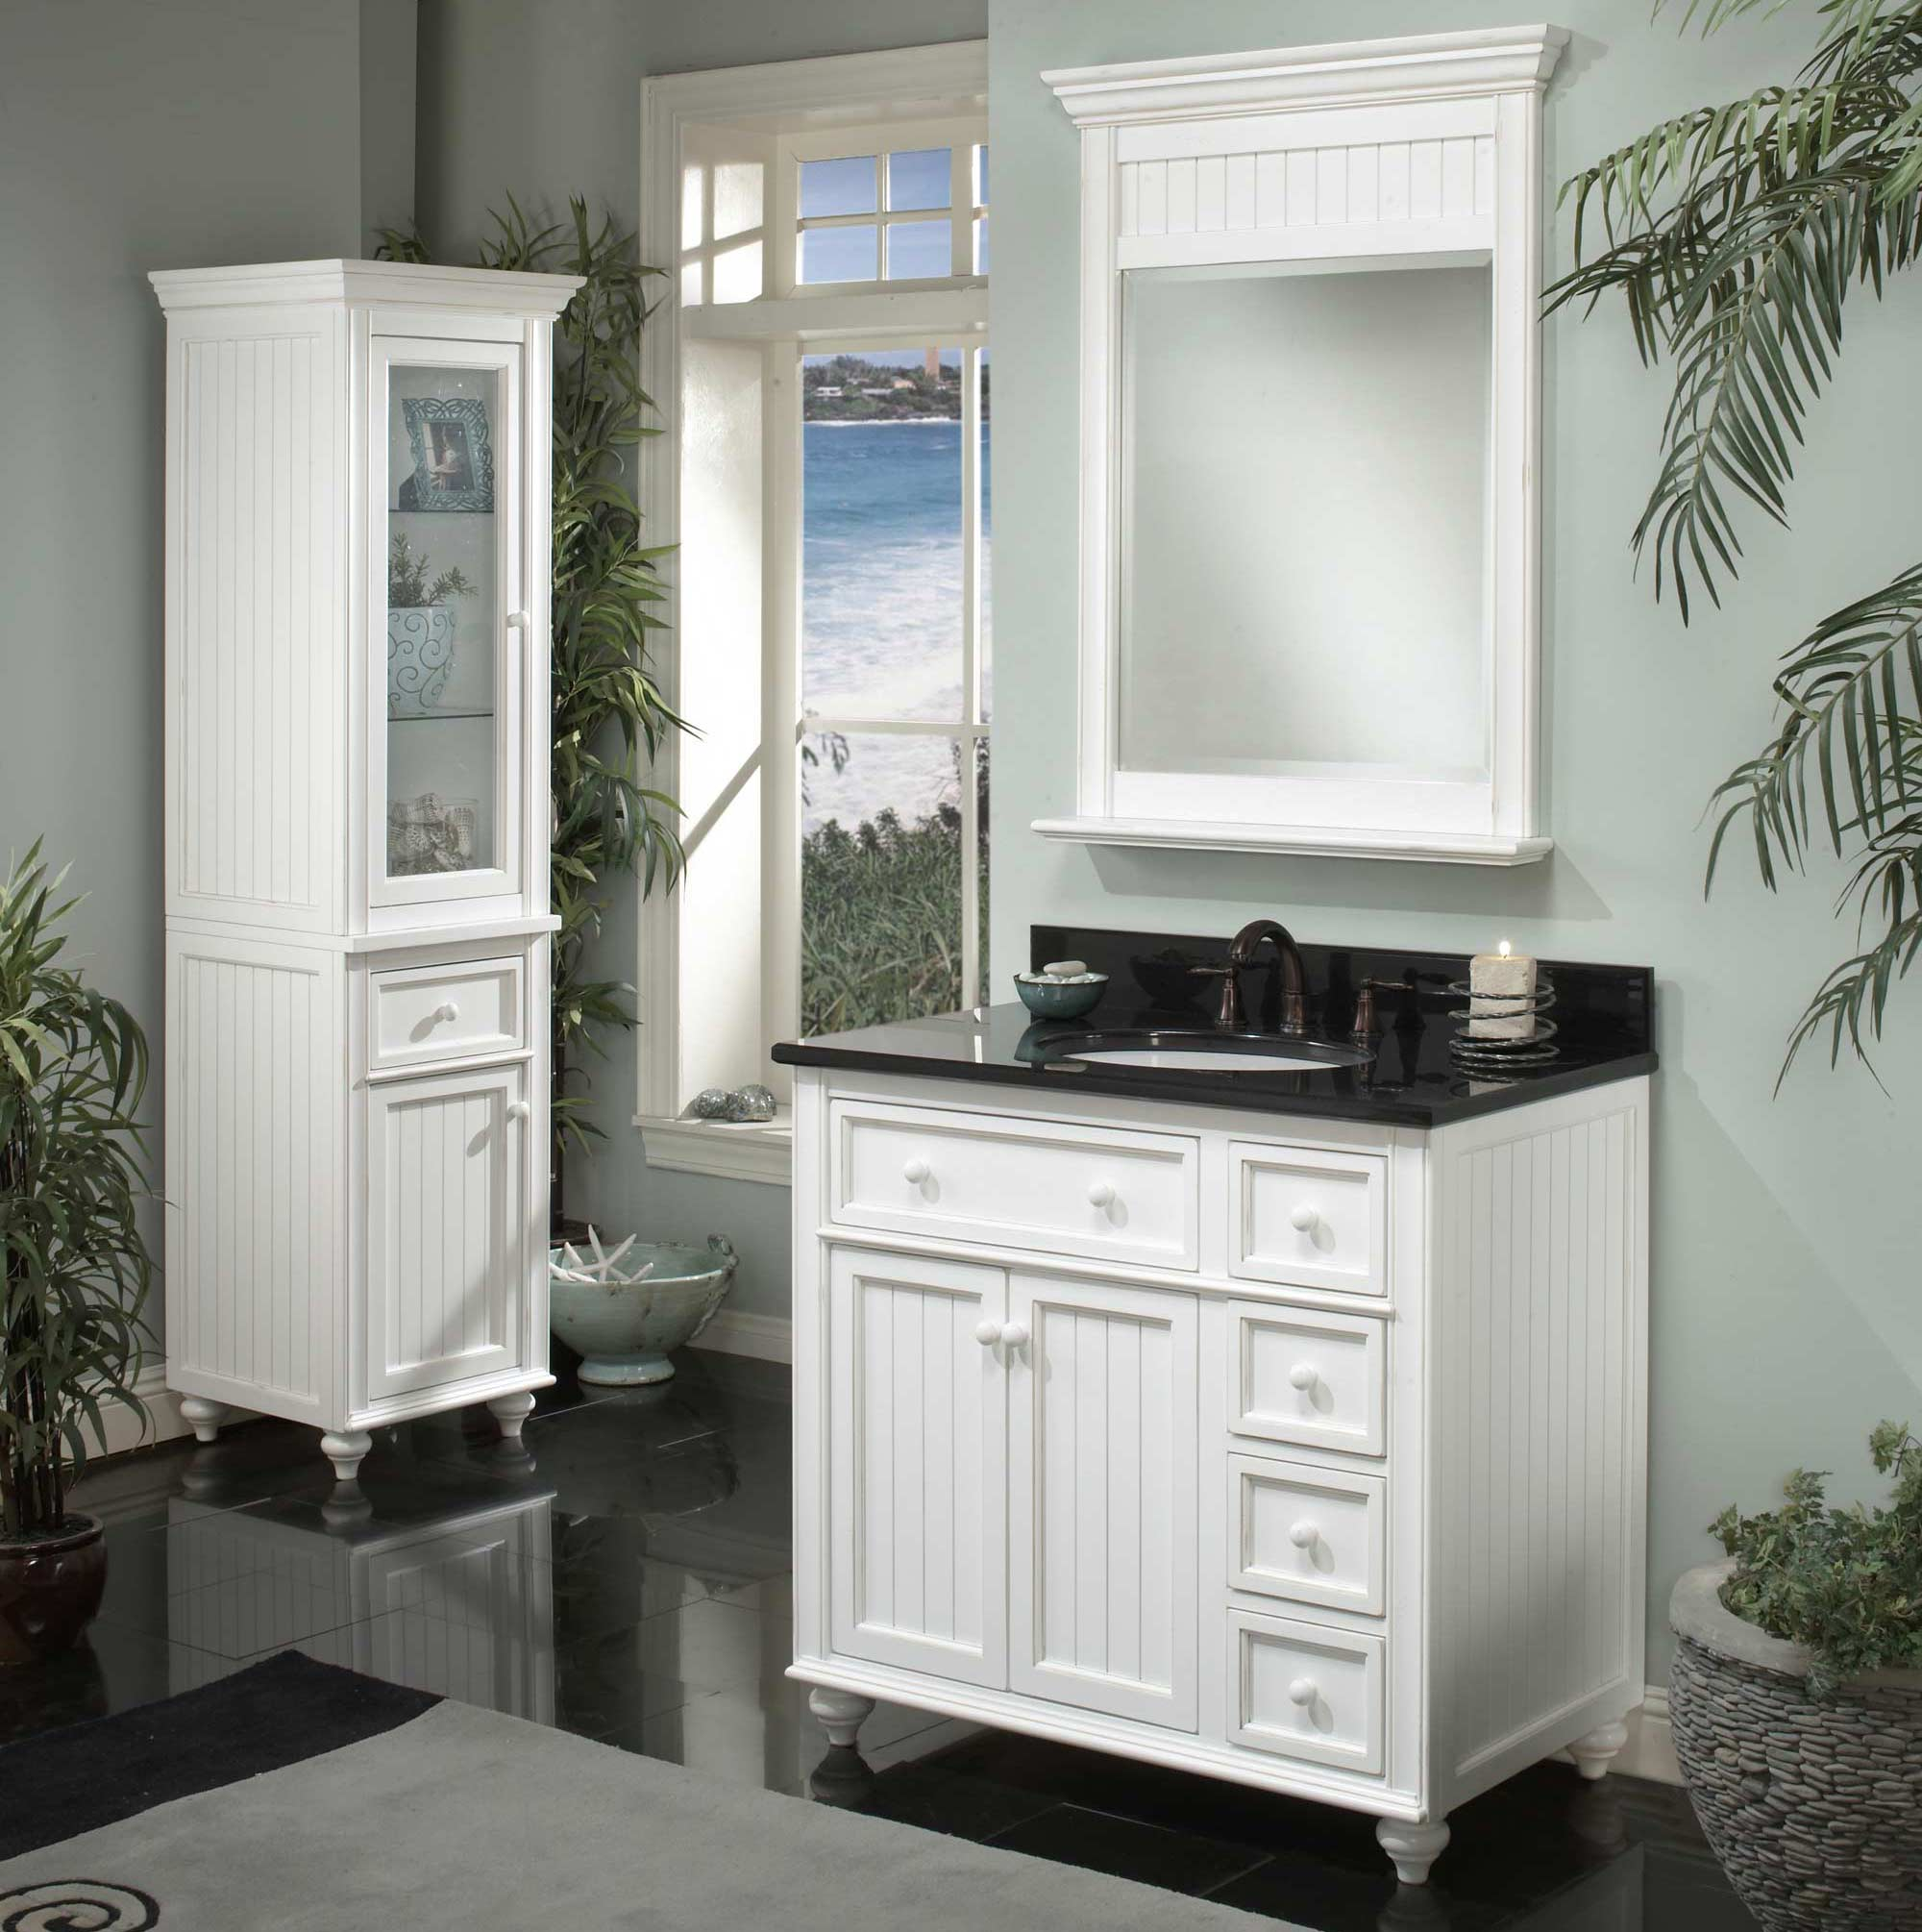 A Selection of White Bathroom Vanities by Sagehill Designs ...